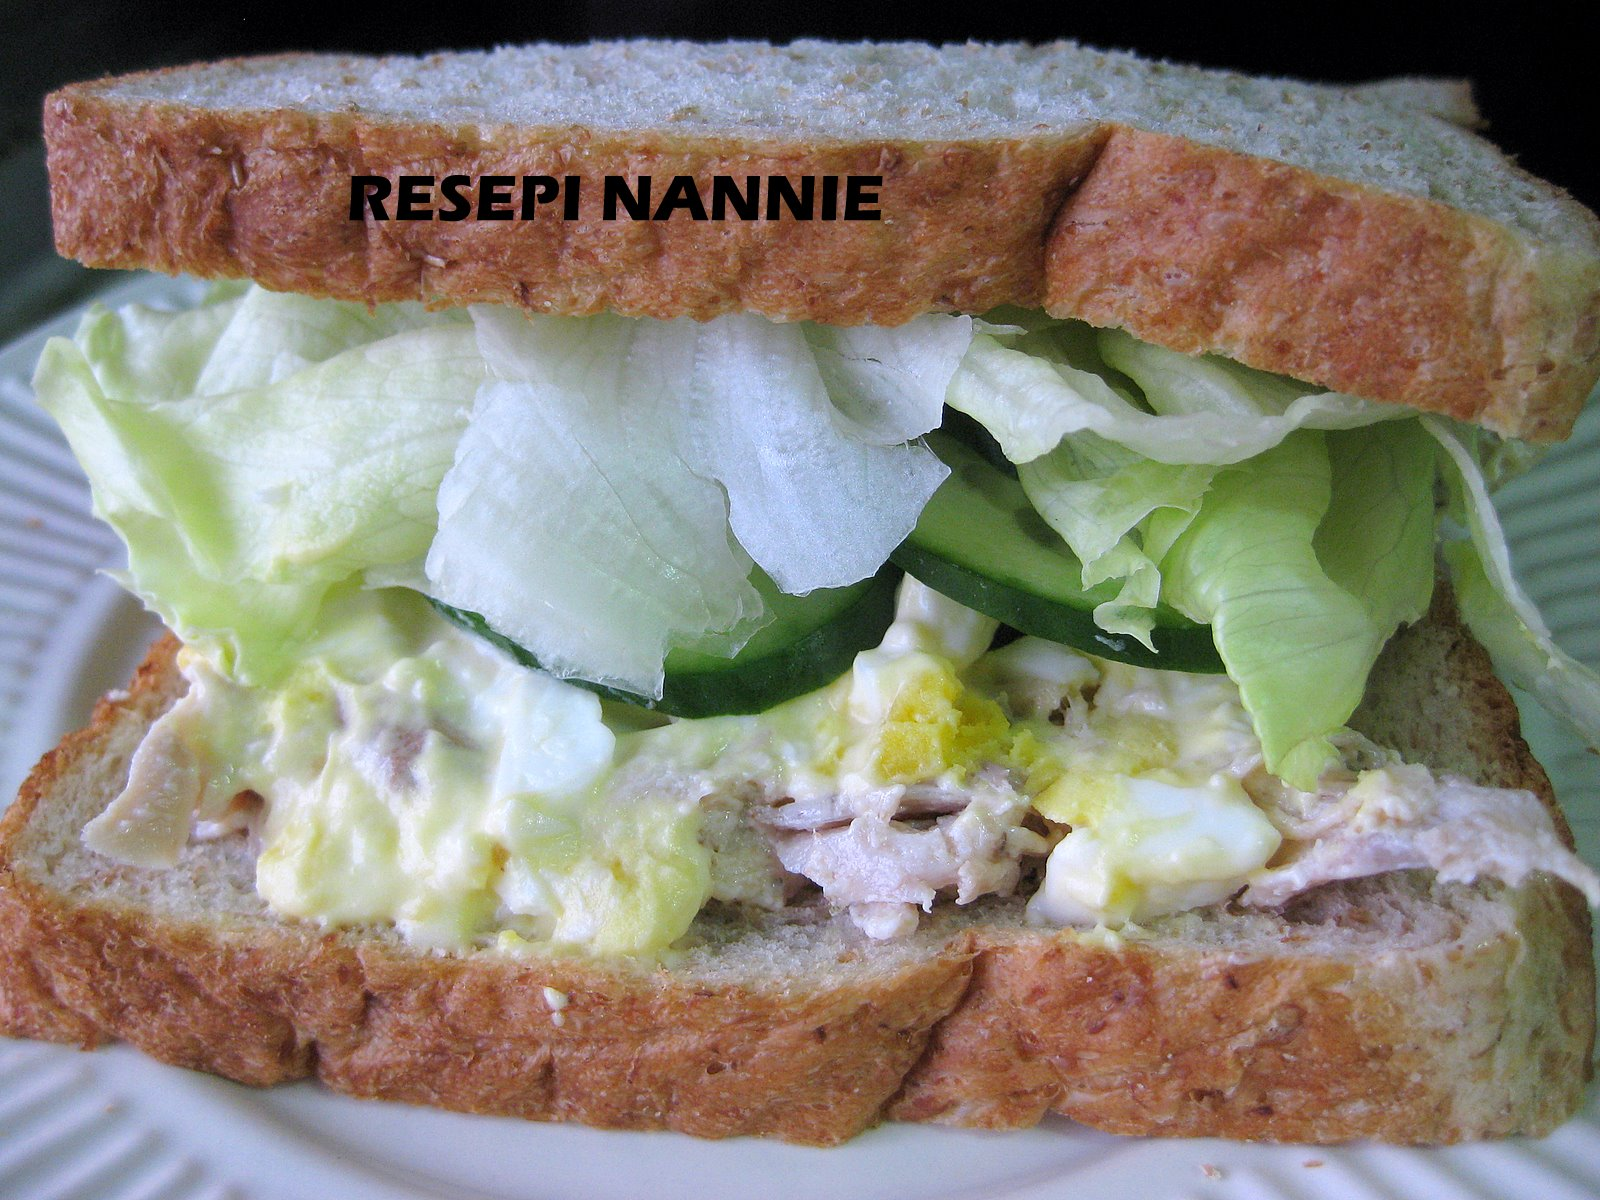 CHICKEN & EGG MAYO SANDWICH - Tips Resep Cara Membuat